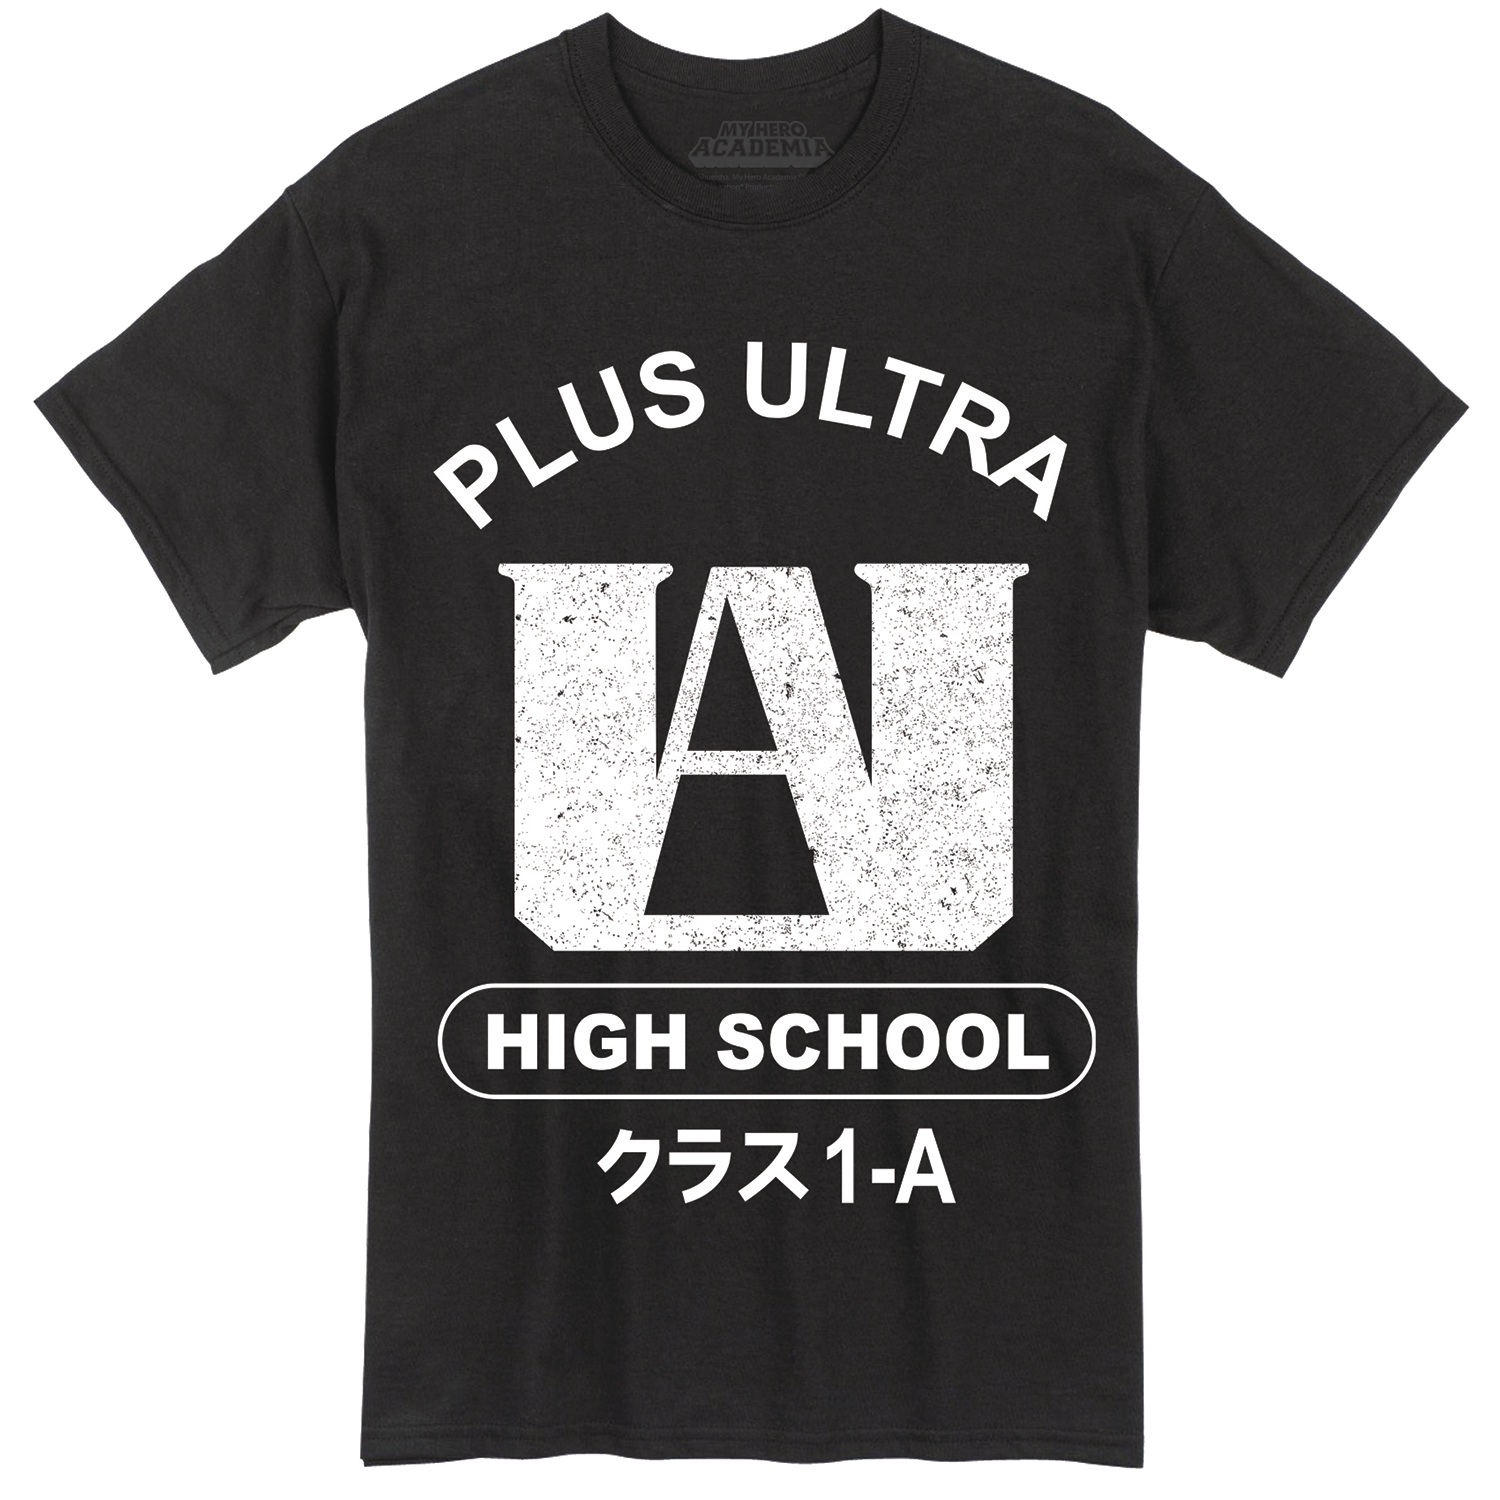 MY HERO ACADEMIA PLUS ULTRA BLK T/S MED